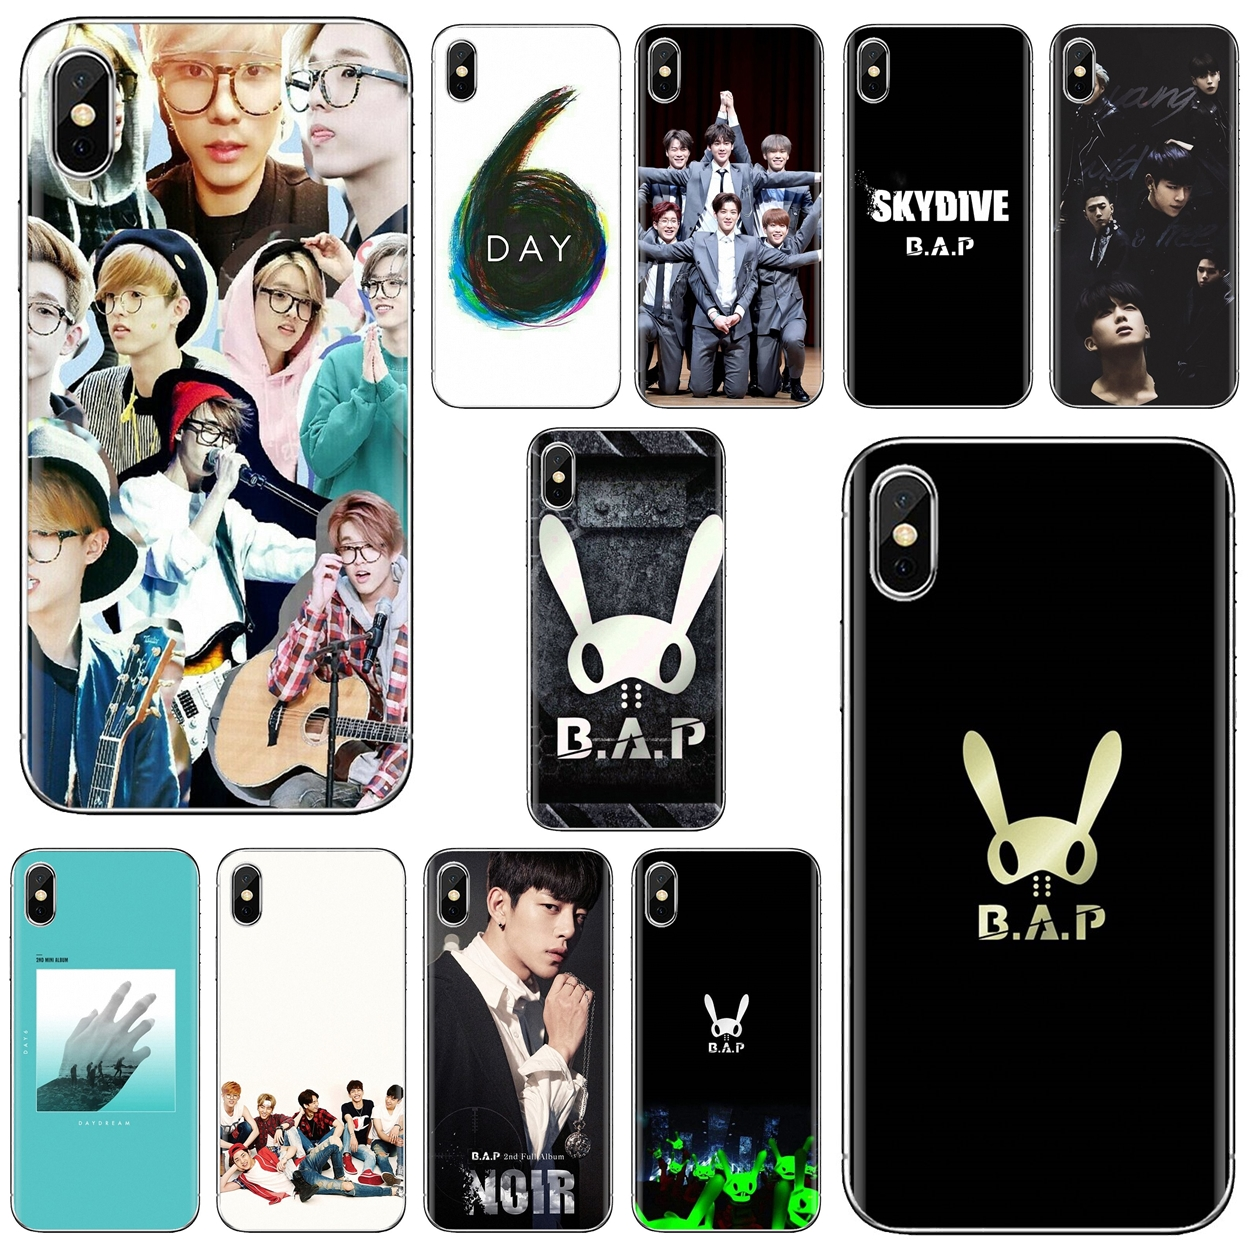 Silicone Phone Skin Case KPOP ASTRO B.A.P Day6 For Motorola Moto G G2 G3 X4 E4 E5 G5 G5S G6 Z Z2 Z3 C Play Plus